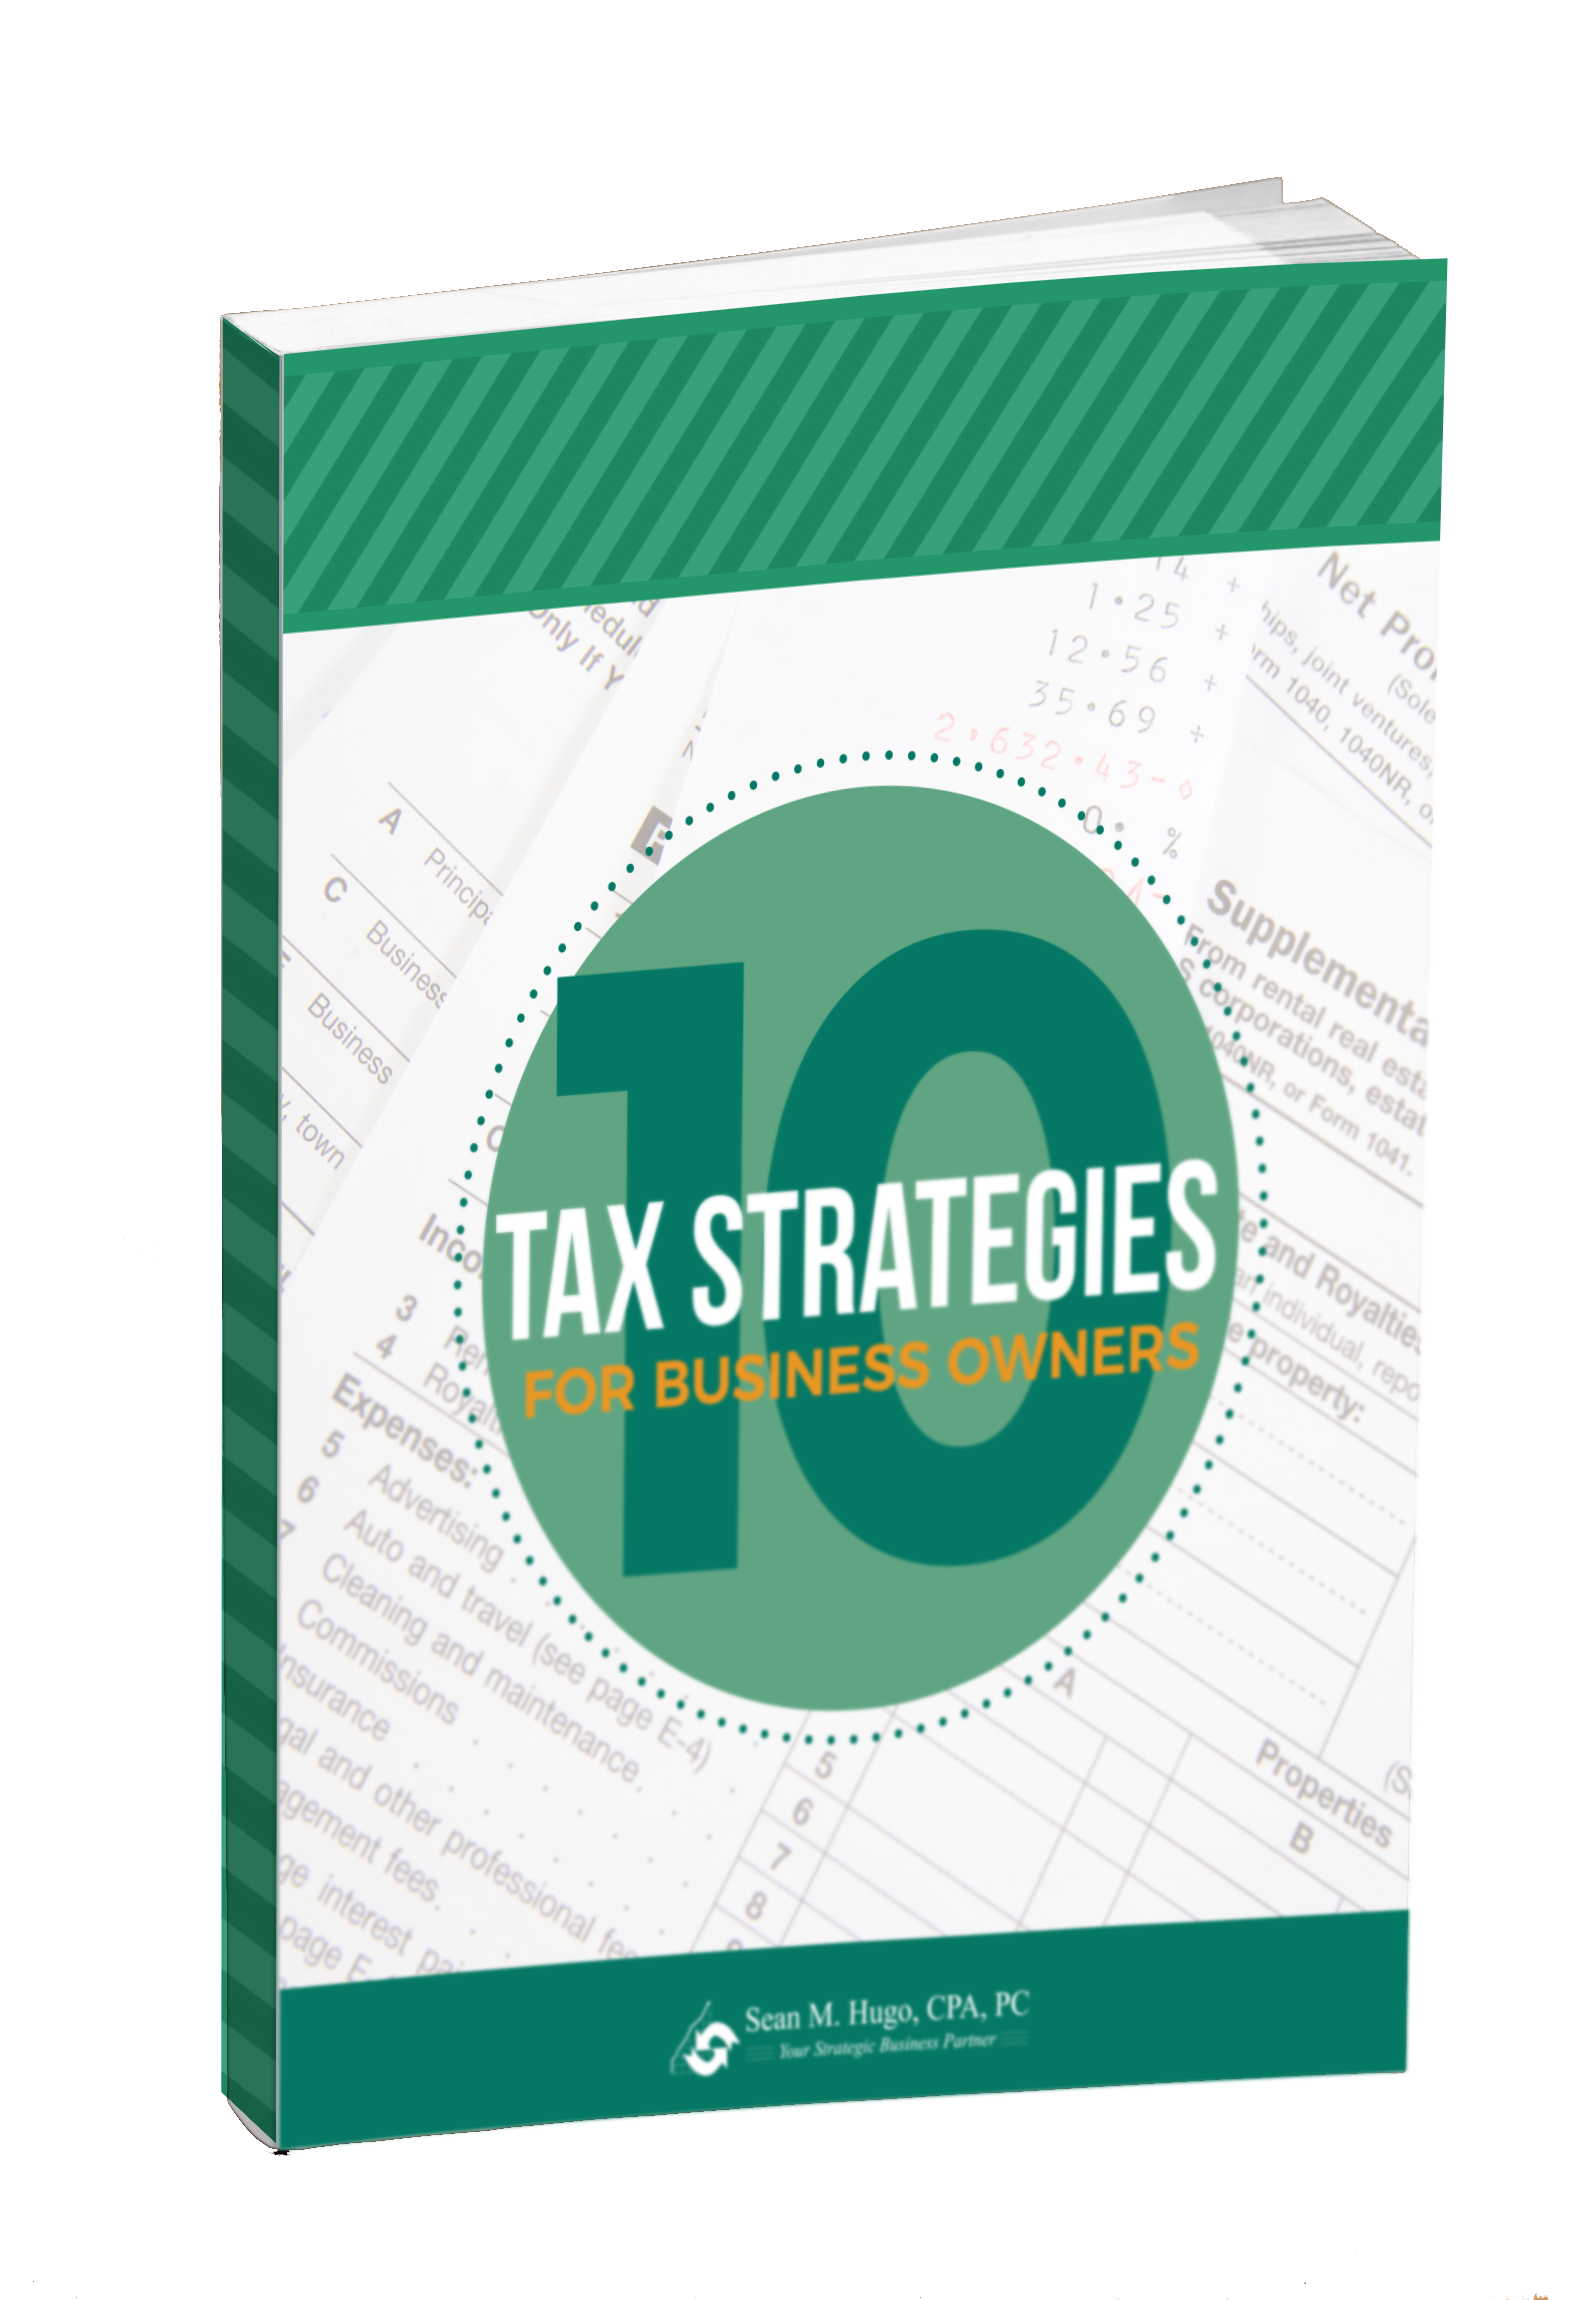 10 Tax Strategies Book Cover.png